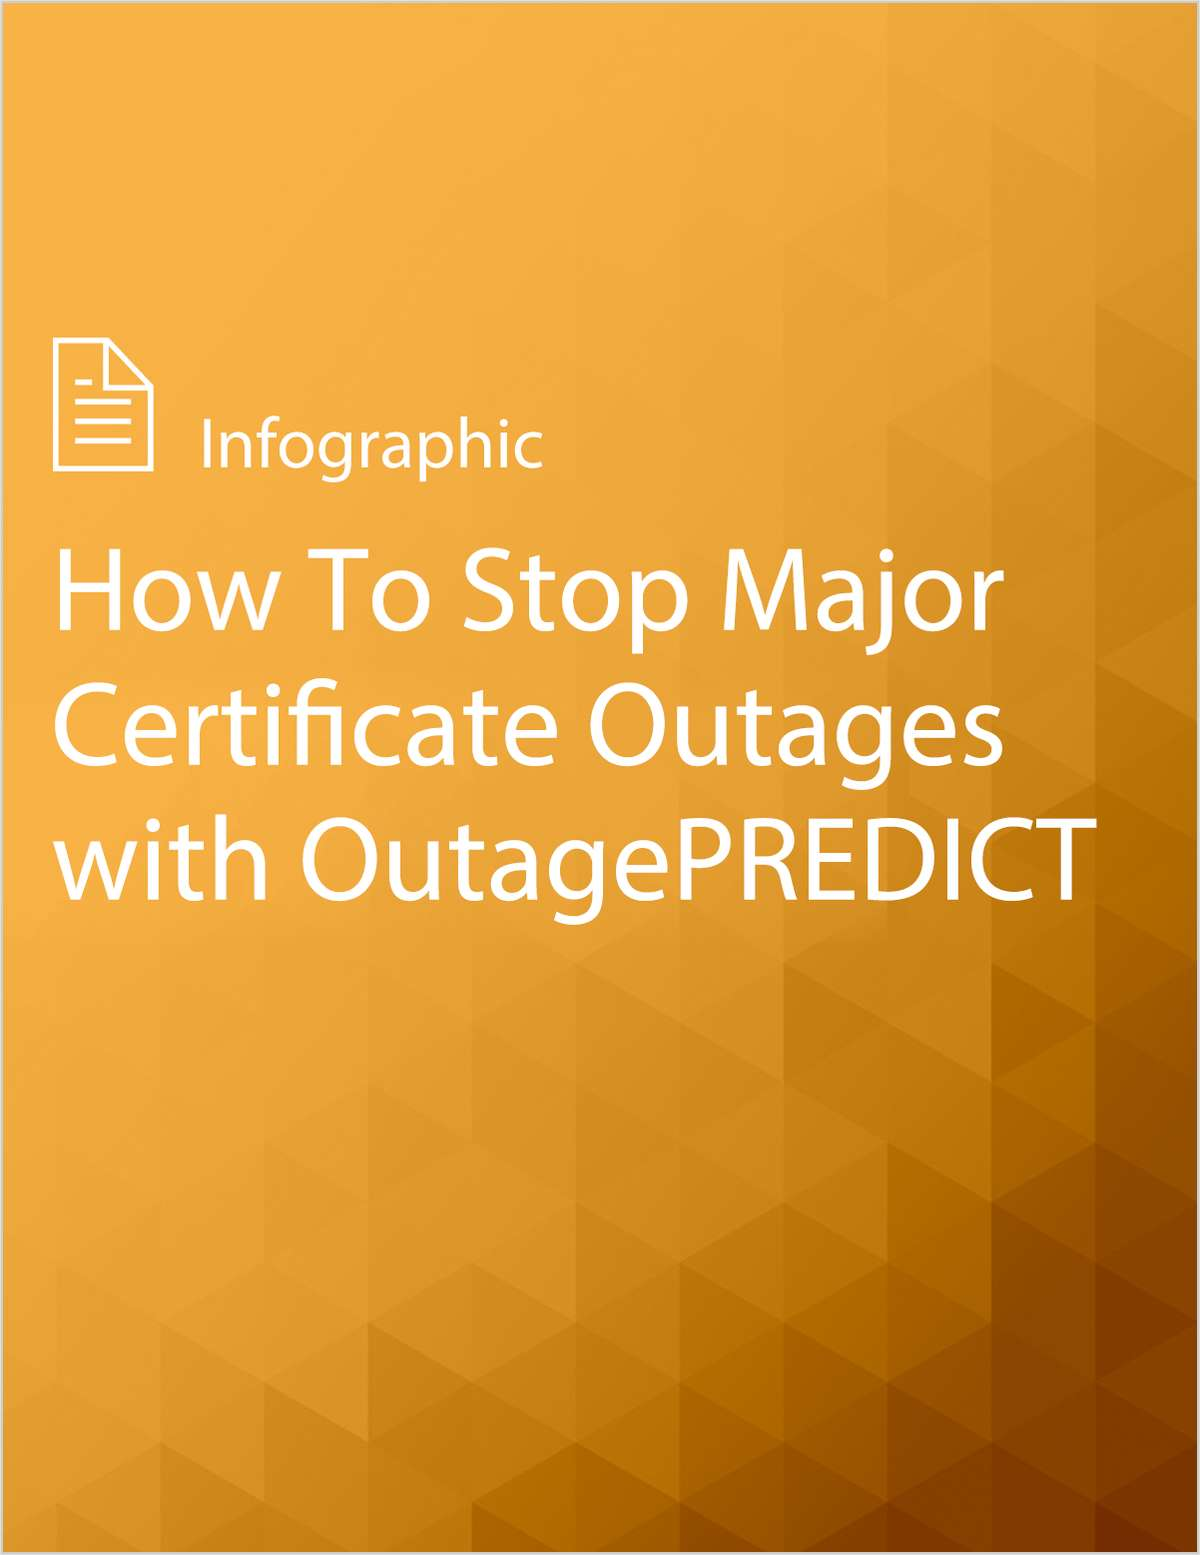 How To Stop Major Certificate Outages